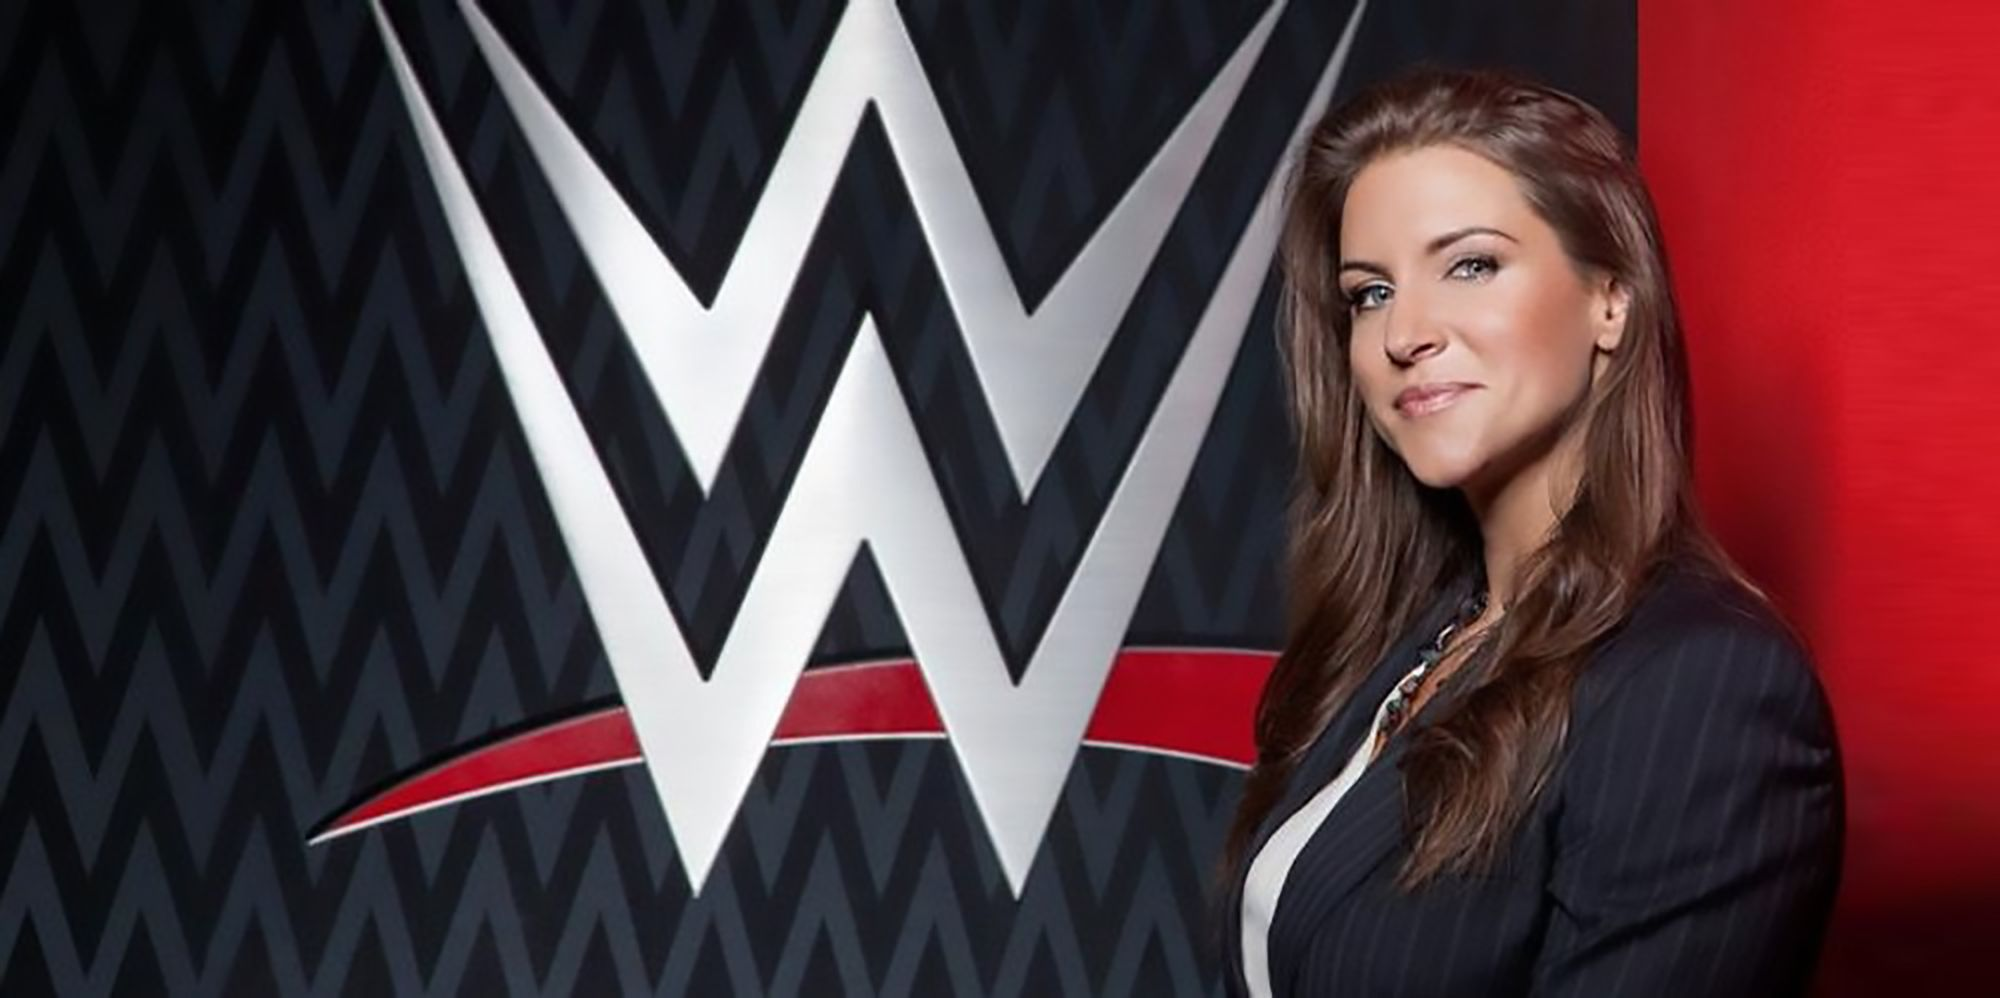 Stephanie Mcmahon On The Attitude Era Wwe Going Pg Possible Match At Wrestlemania